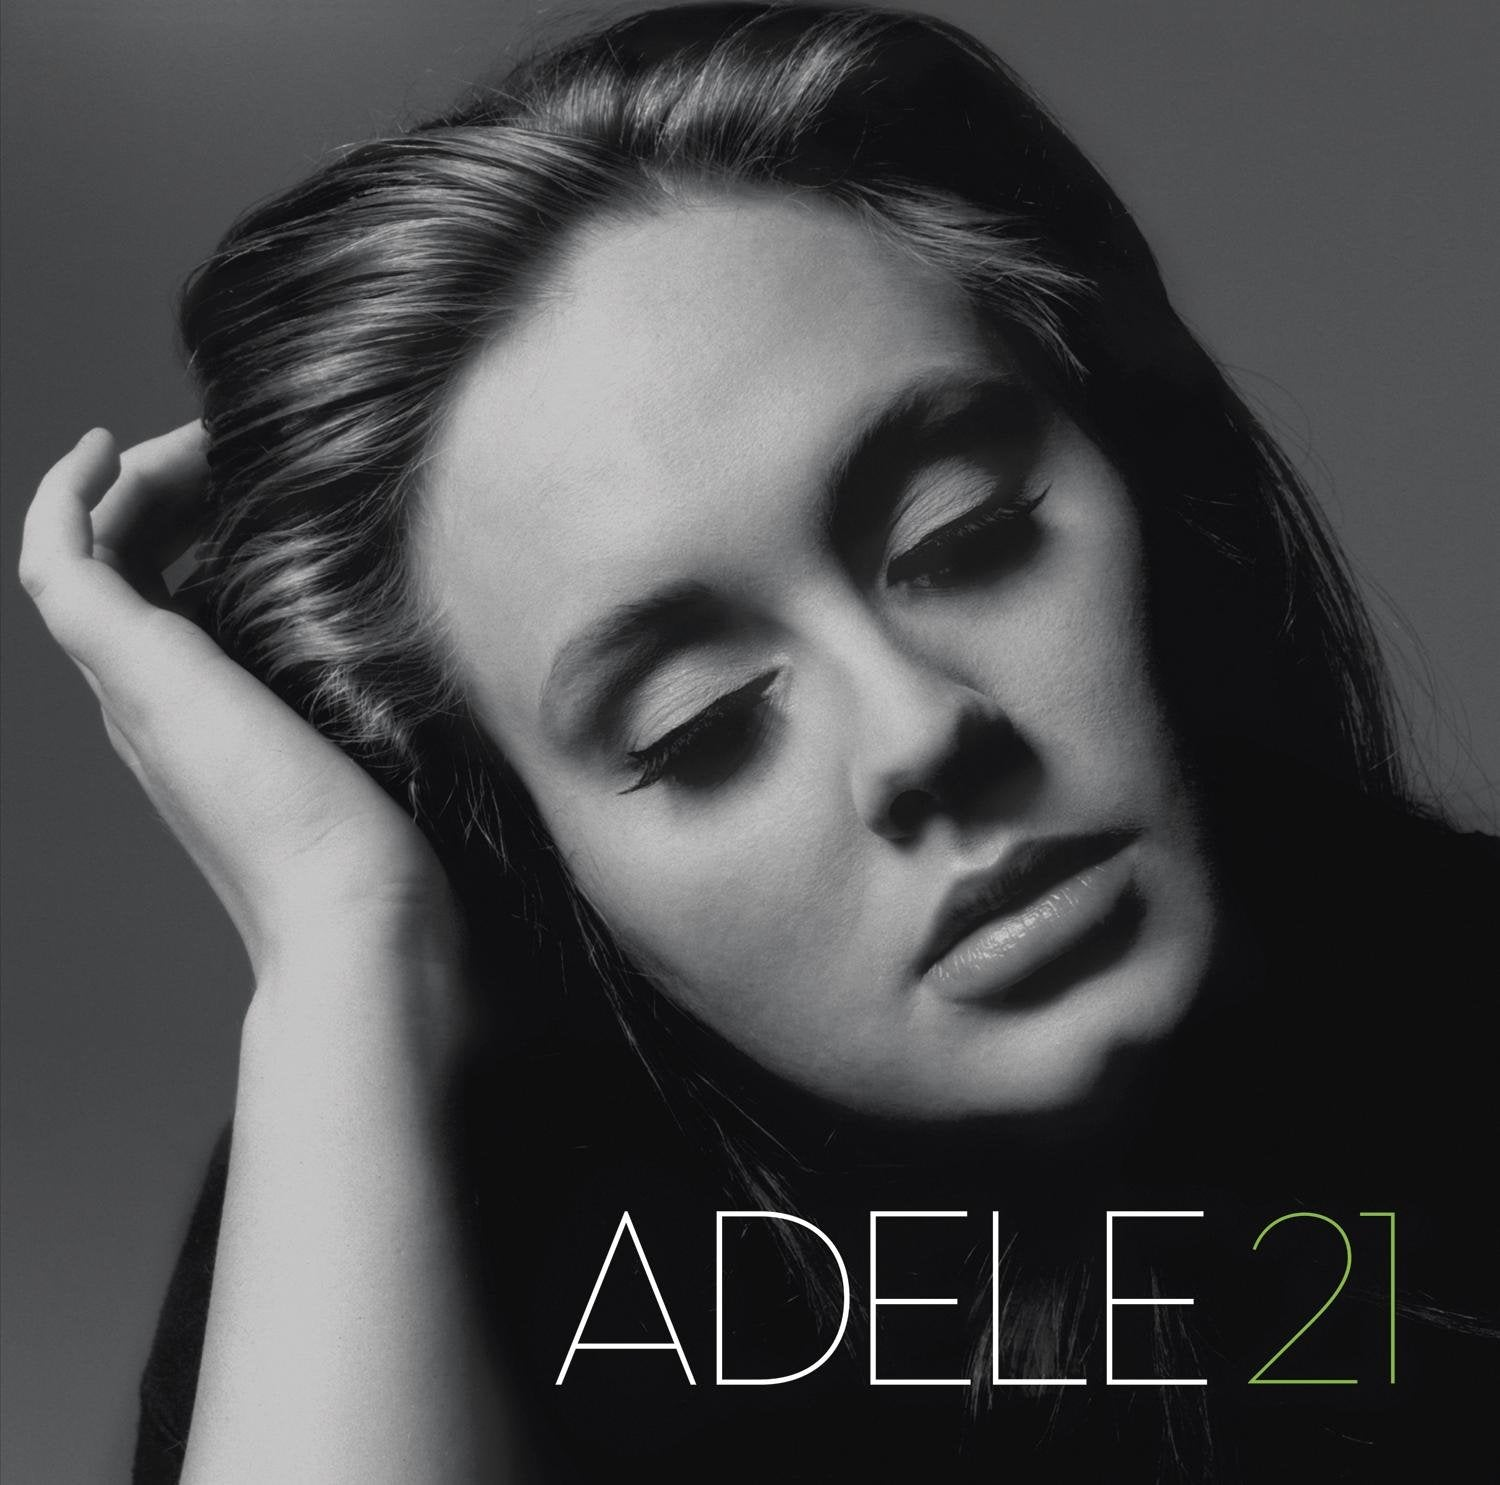 Adele - 21 - Gears For Ears